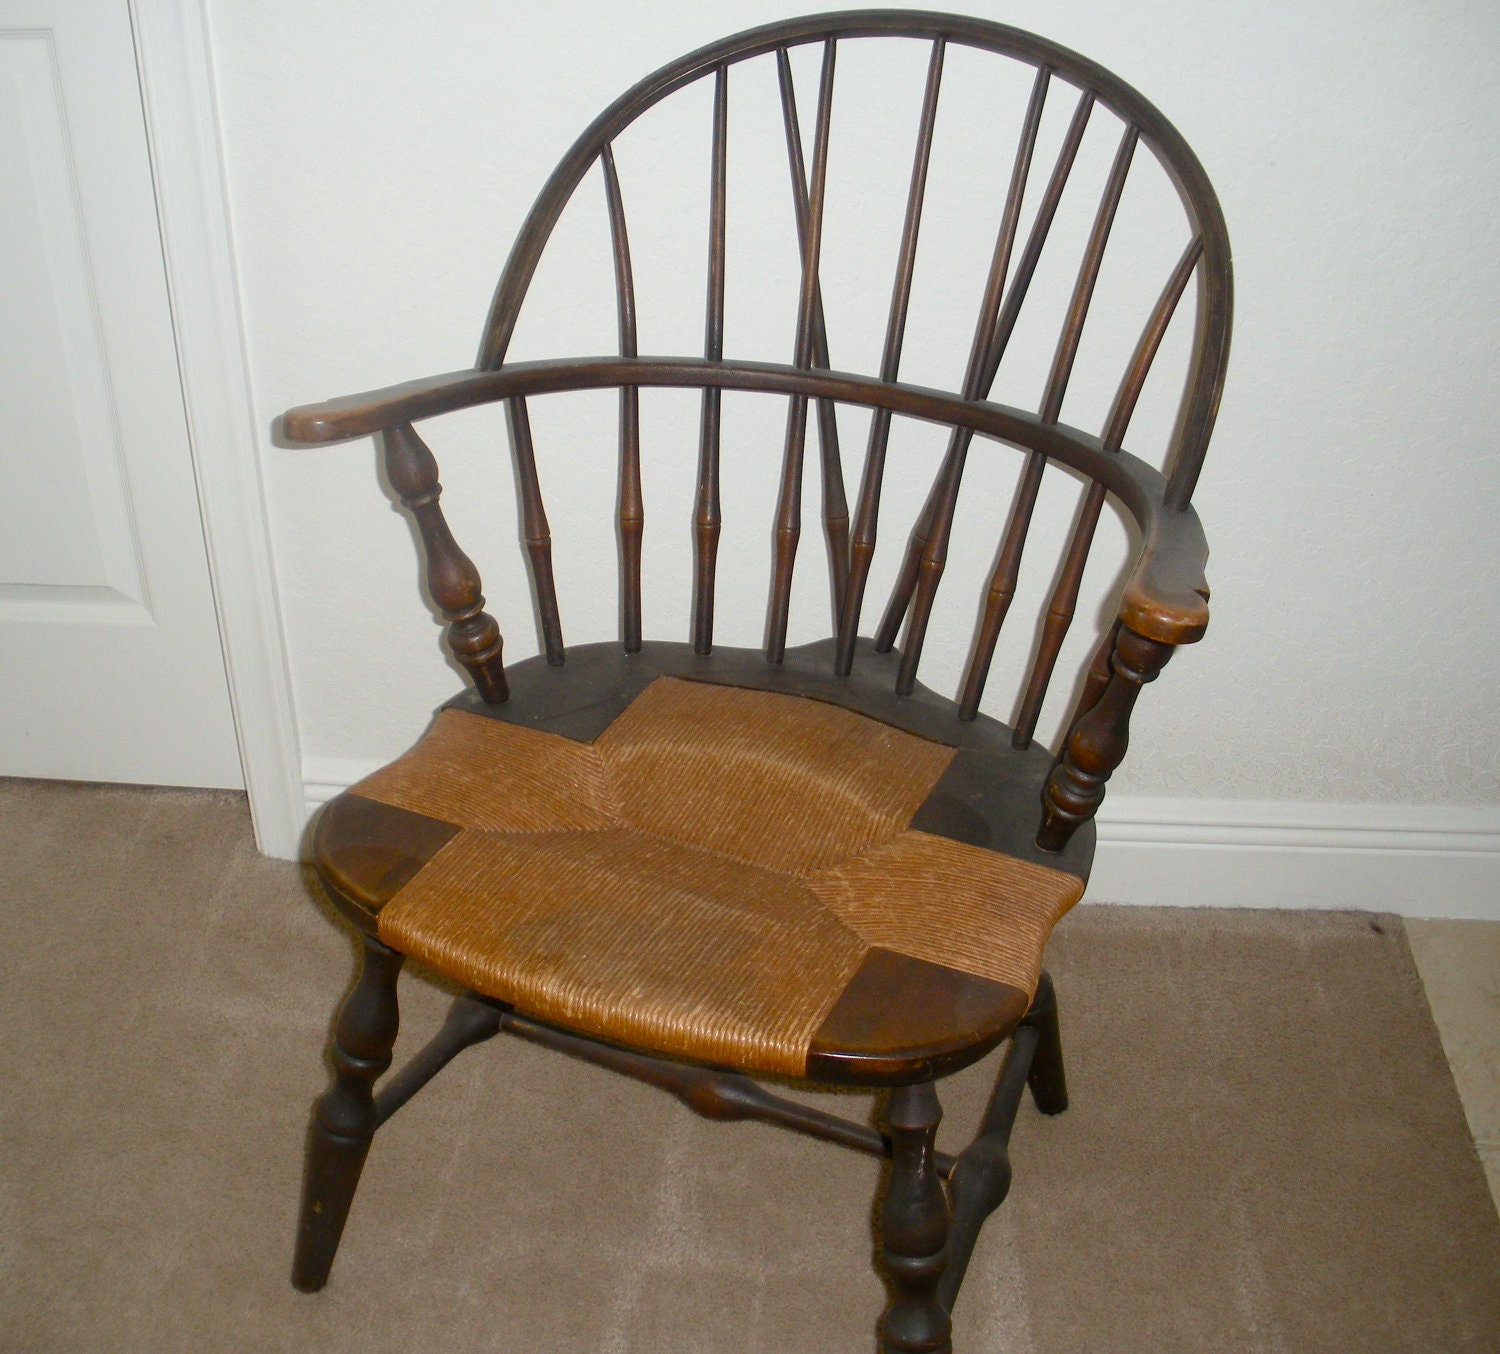 Bon Markovicharts » Antique Chair   Antique Windsor Chairs For Sale Antique  Furniture   Antique Windsor Rocking